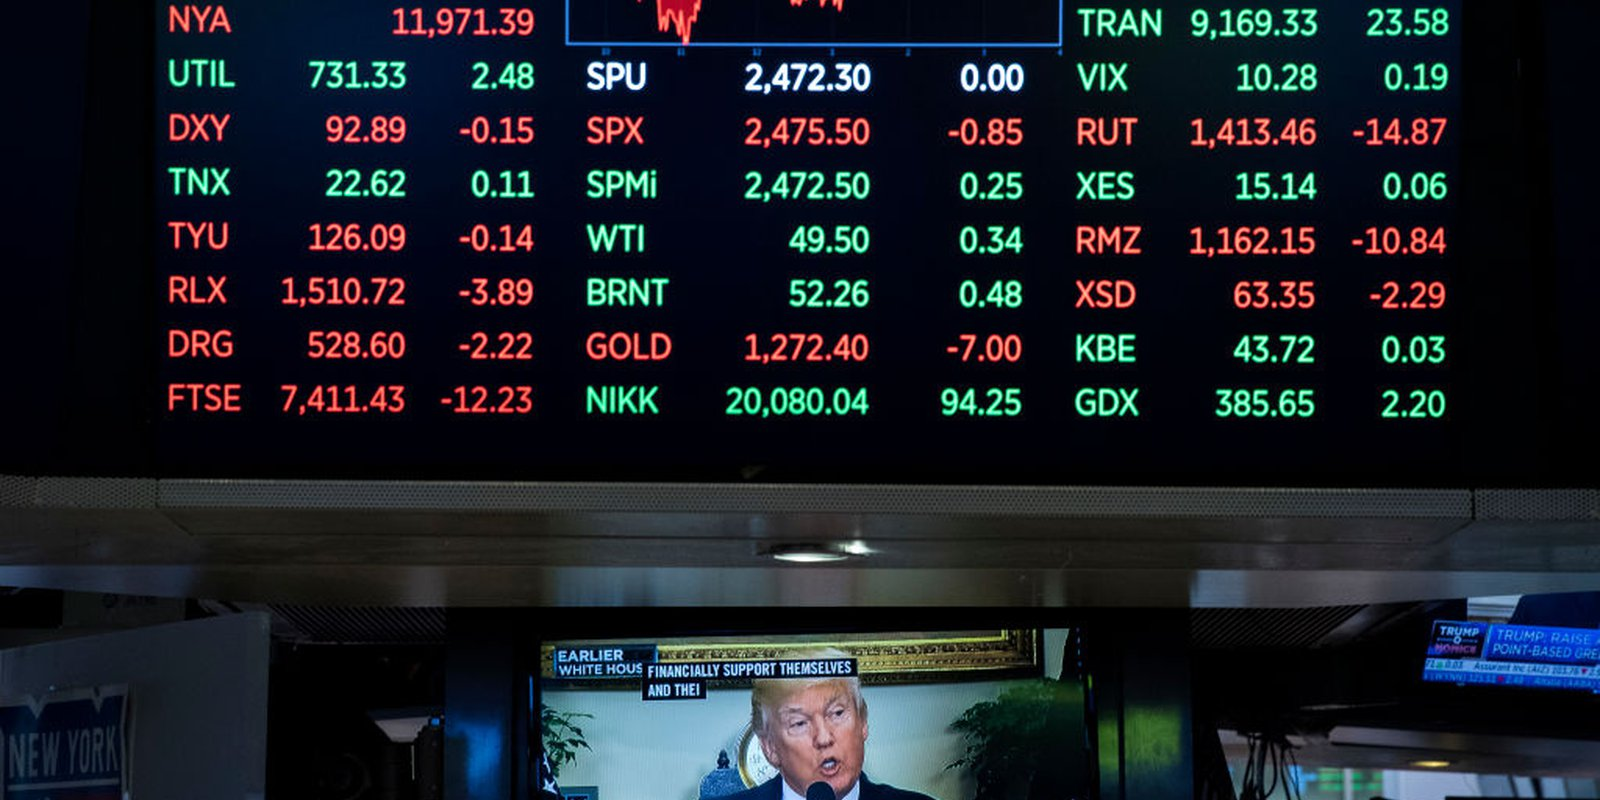 President Donald Trump is displayed on a television screen on the floor of the New York Stock Exchange ahead of the closing bell on 2 August  2017. Photo: Getty Images.